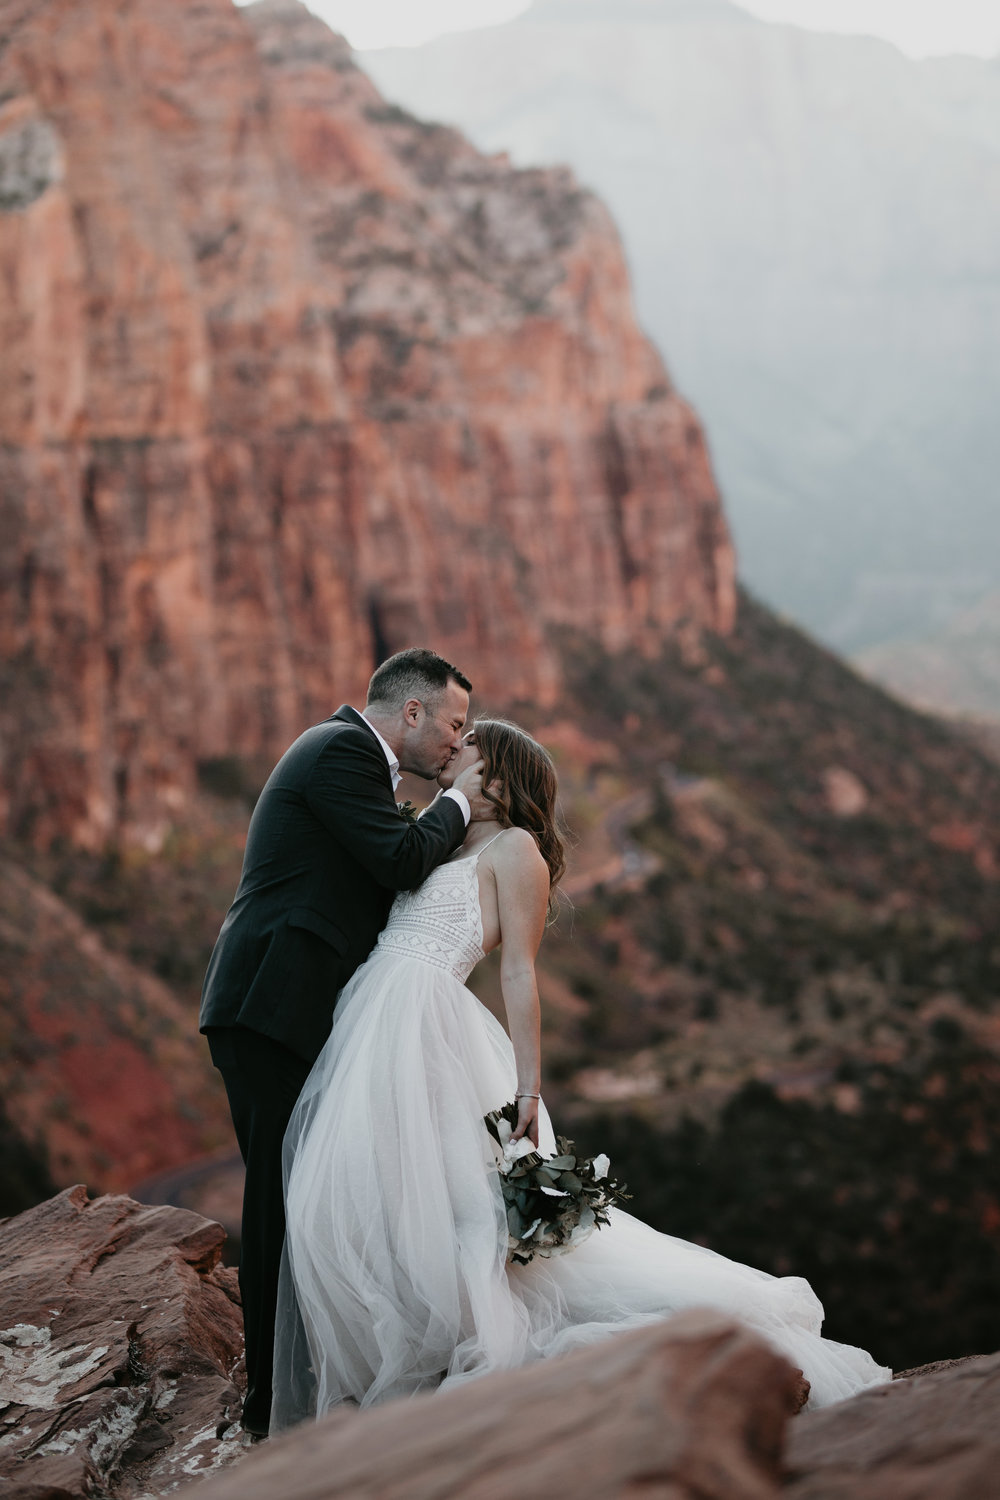 nicole-daacke-photography-zion-national-park-elopement-photographer-canyon-overlook-trail-elope-hiking-adventure-wedding-photos-fall-utah-red-rock-canyon-stgeorge-eloping-photographer-45.jpg